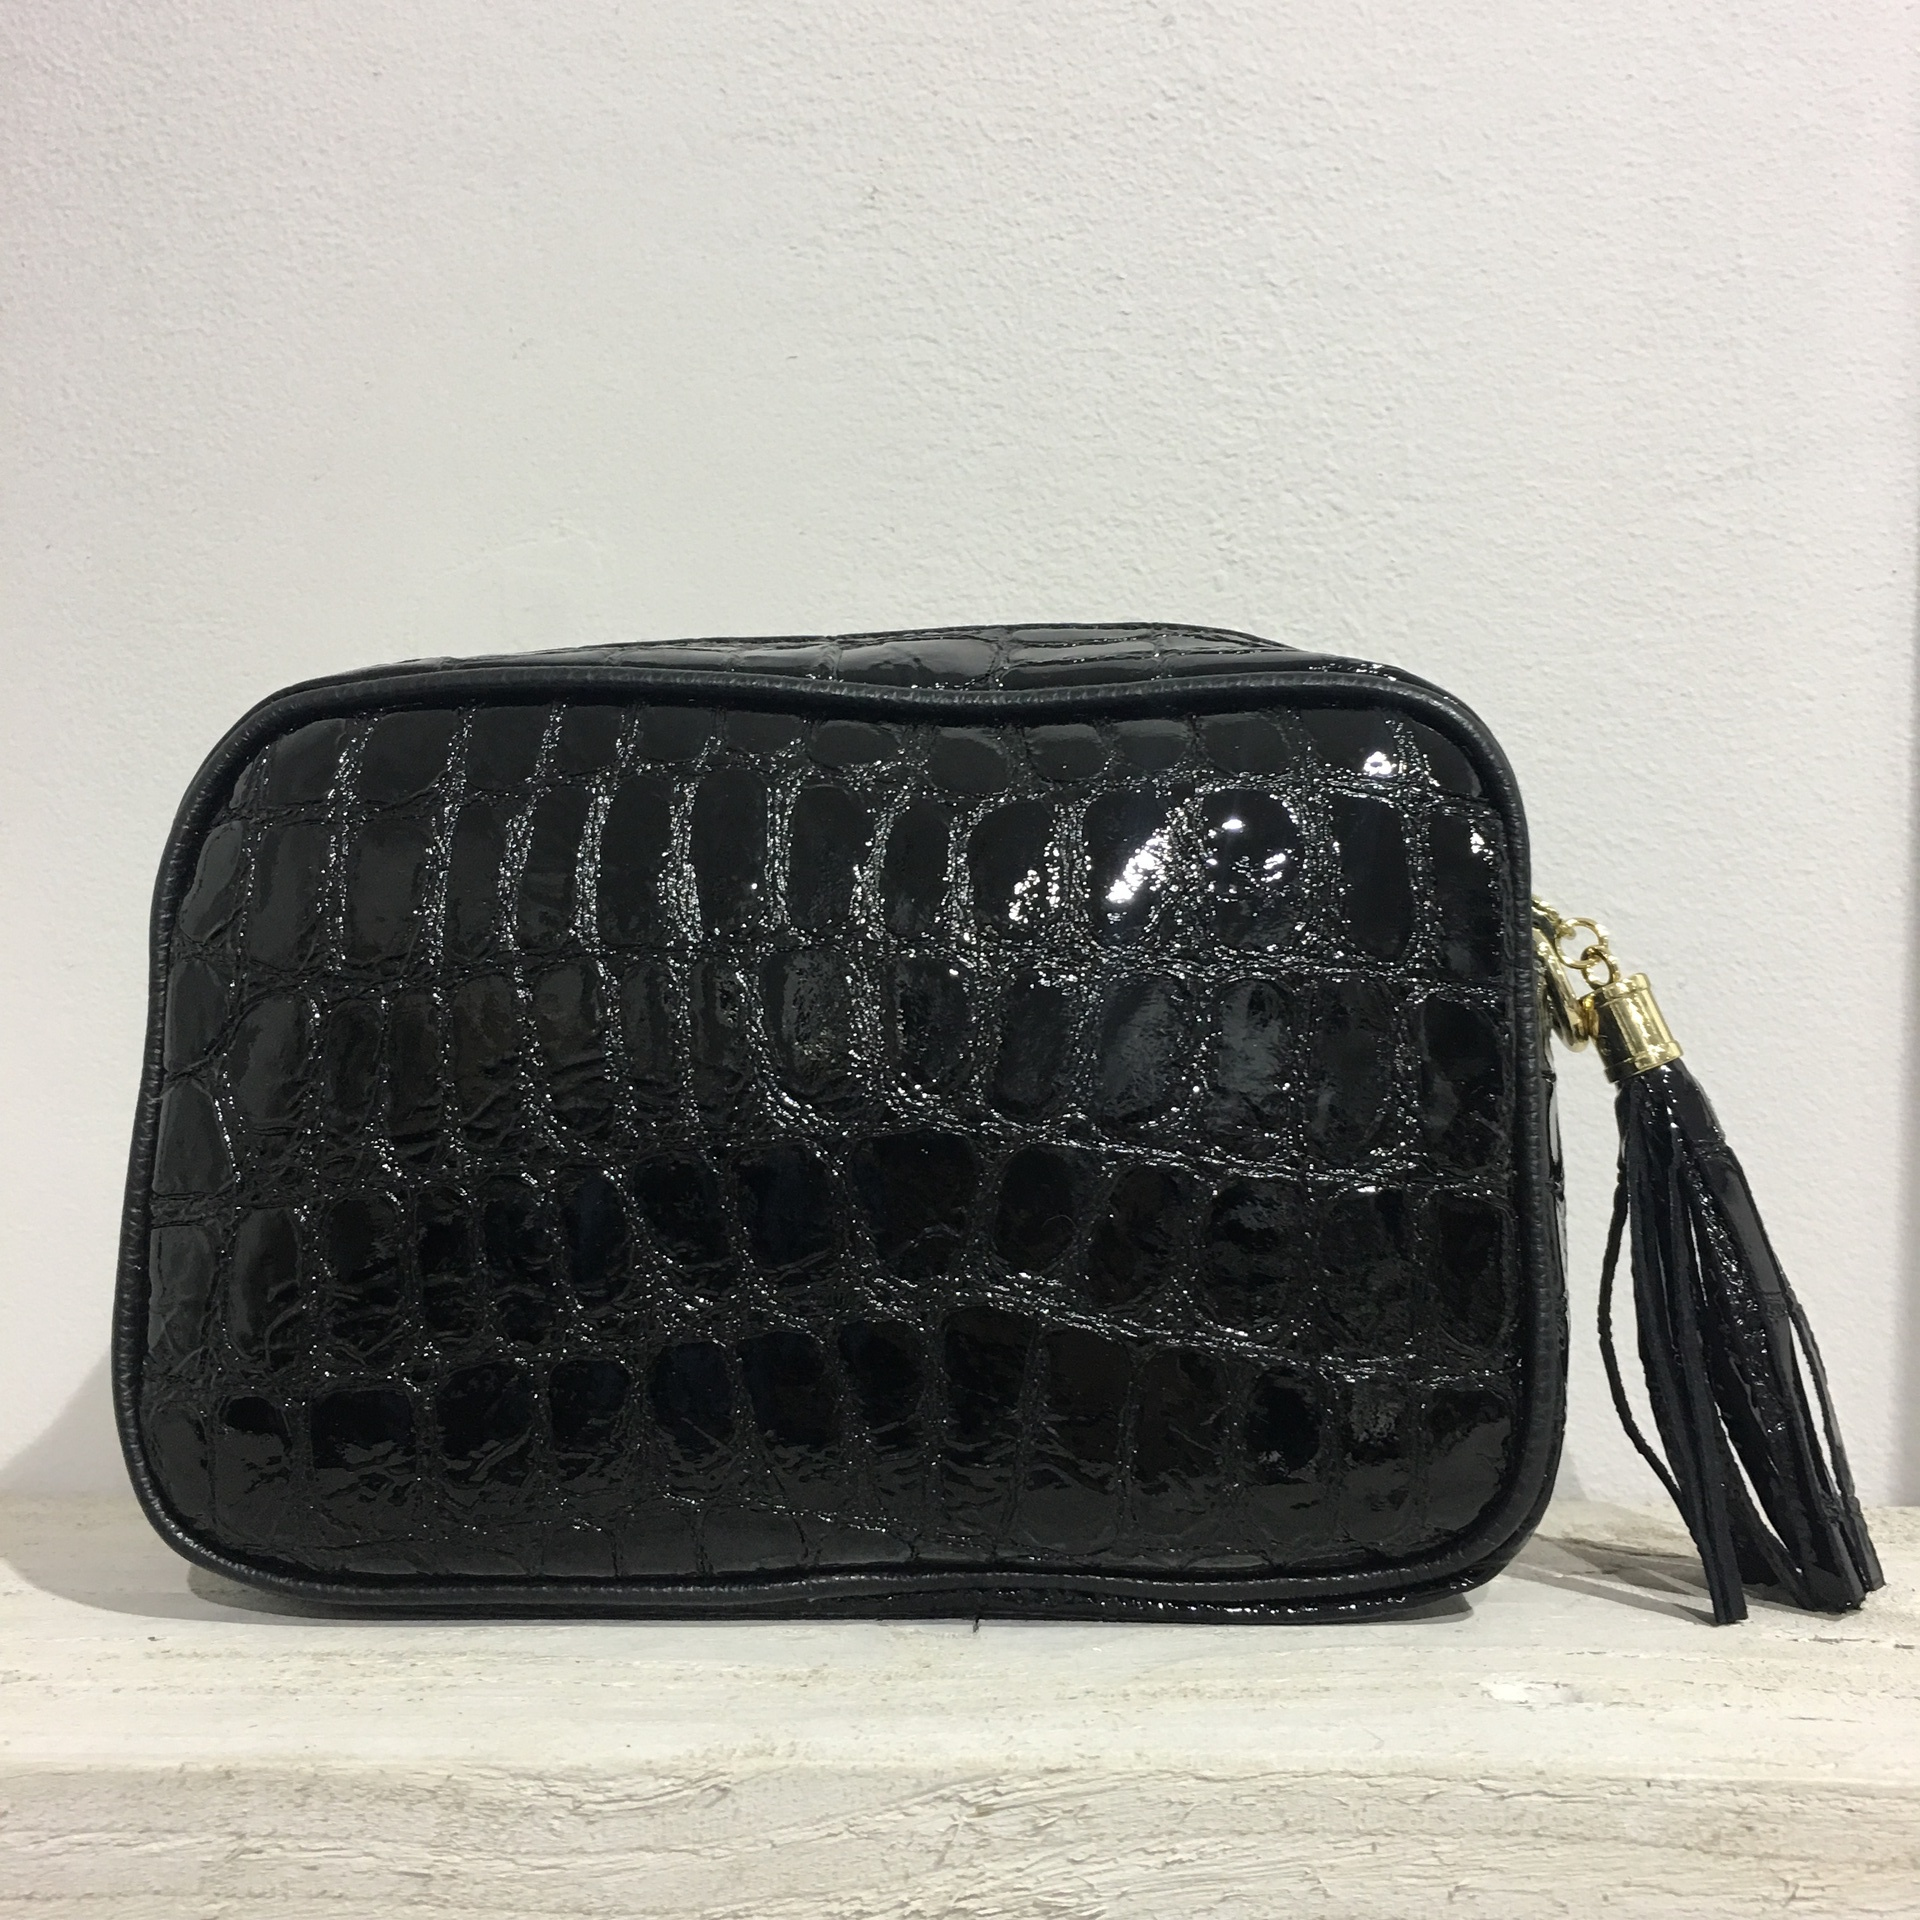 Croc Tassel Cross Body Bag